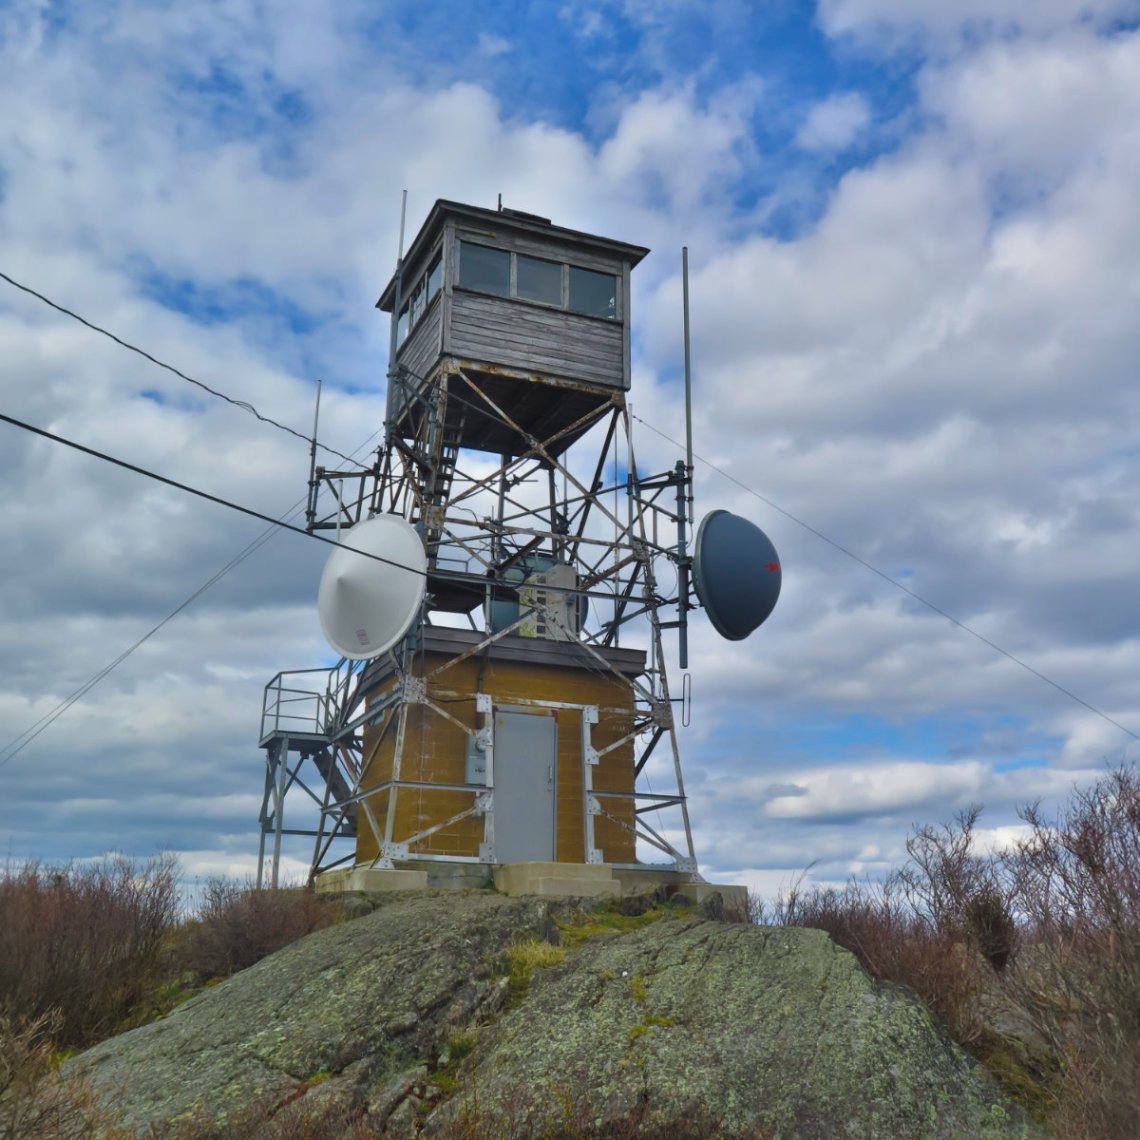 08-Pitcher-Fire-Tower-20200506